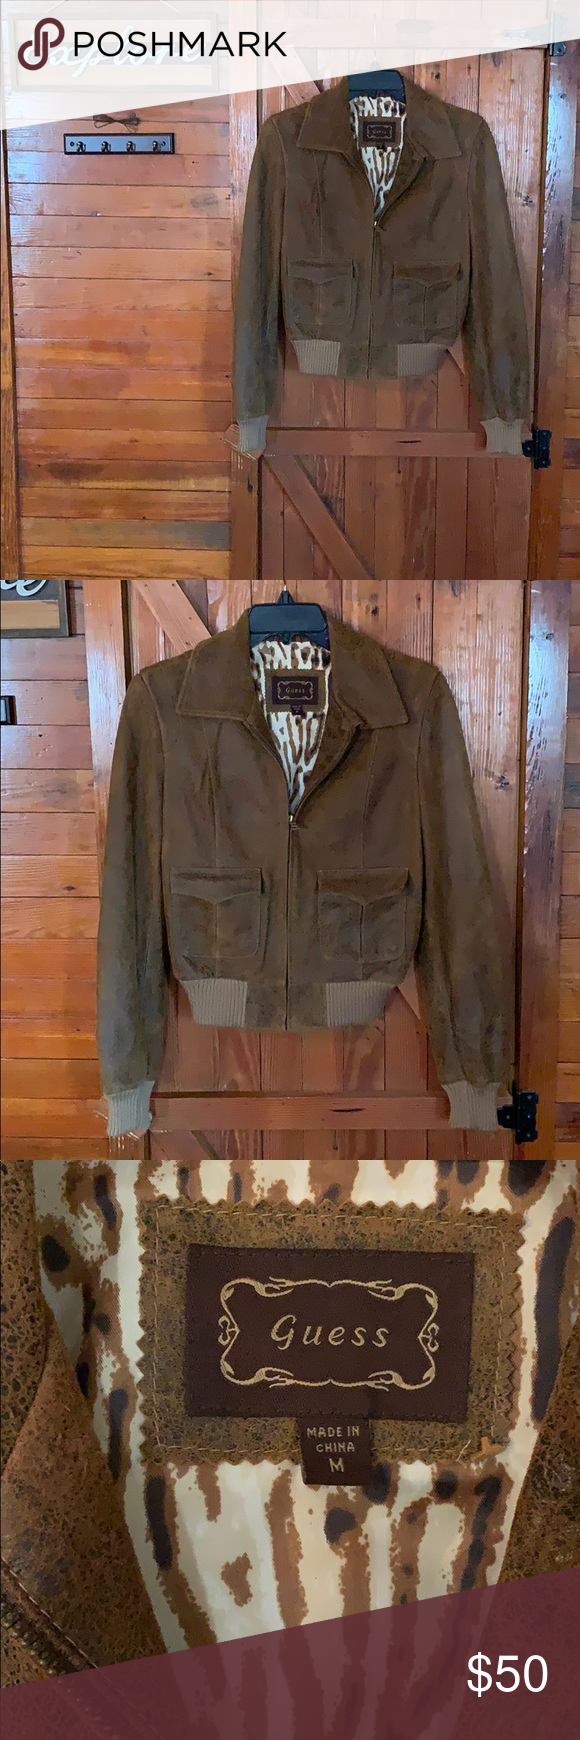 Guess Brown Leather Jacket Woman S Size M Guess Brown Leather Jacket Woman S Size M In Great Condition Jackets Leather Jacket Brown Leather Jacket Jackets [ 1740 x 580 Pixel ]